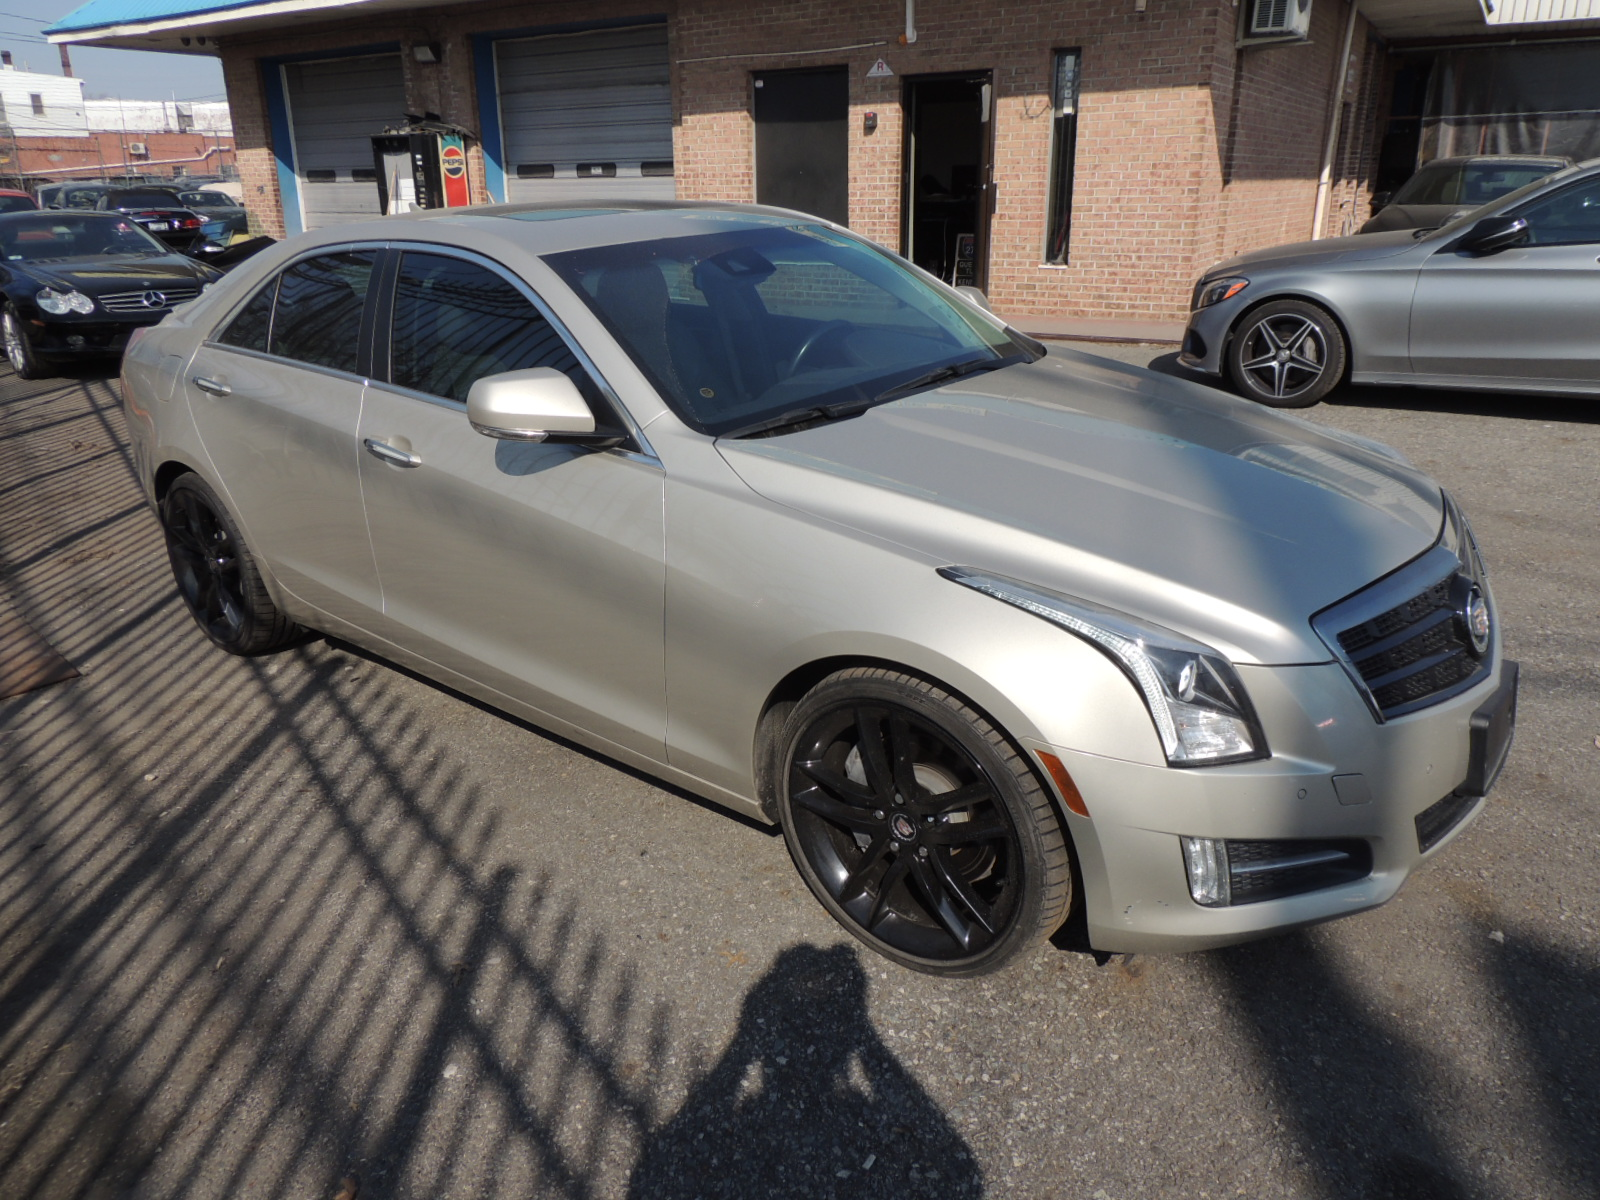 alberta ats inventory used edmonton for sale cadillac in